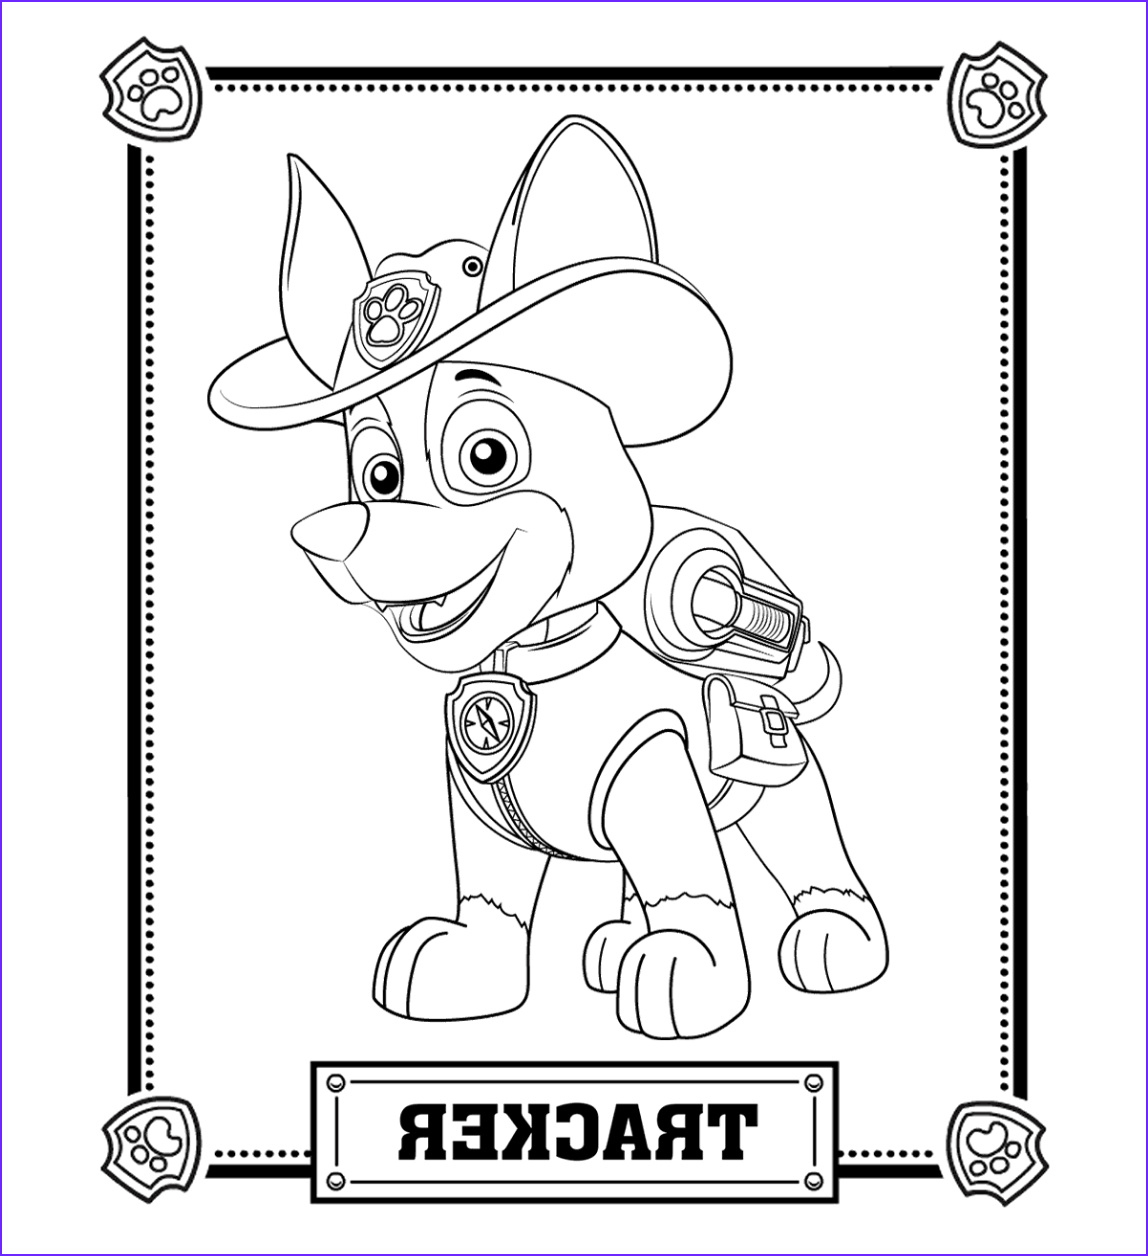 Paw Patrol Coloring Books Cool Image Paw Patrol Tracker Coloring Pages Trevon